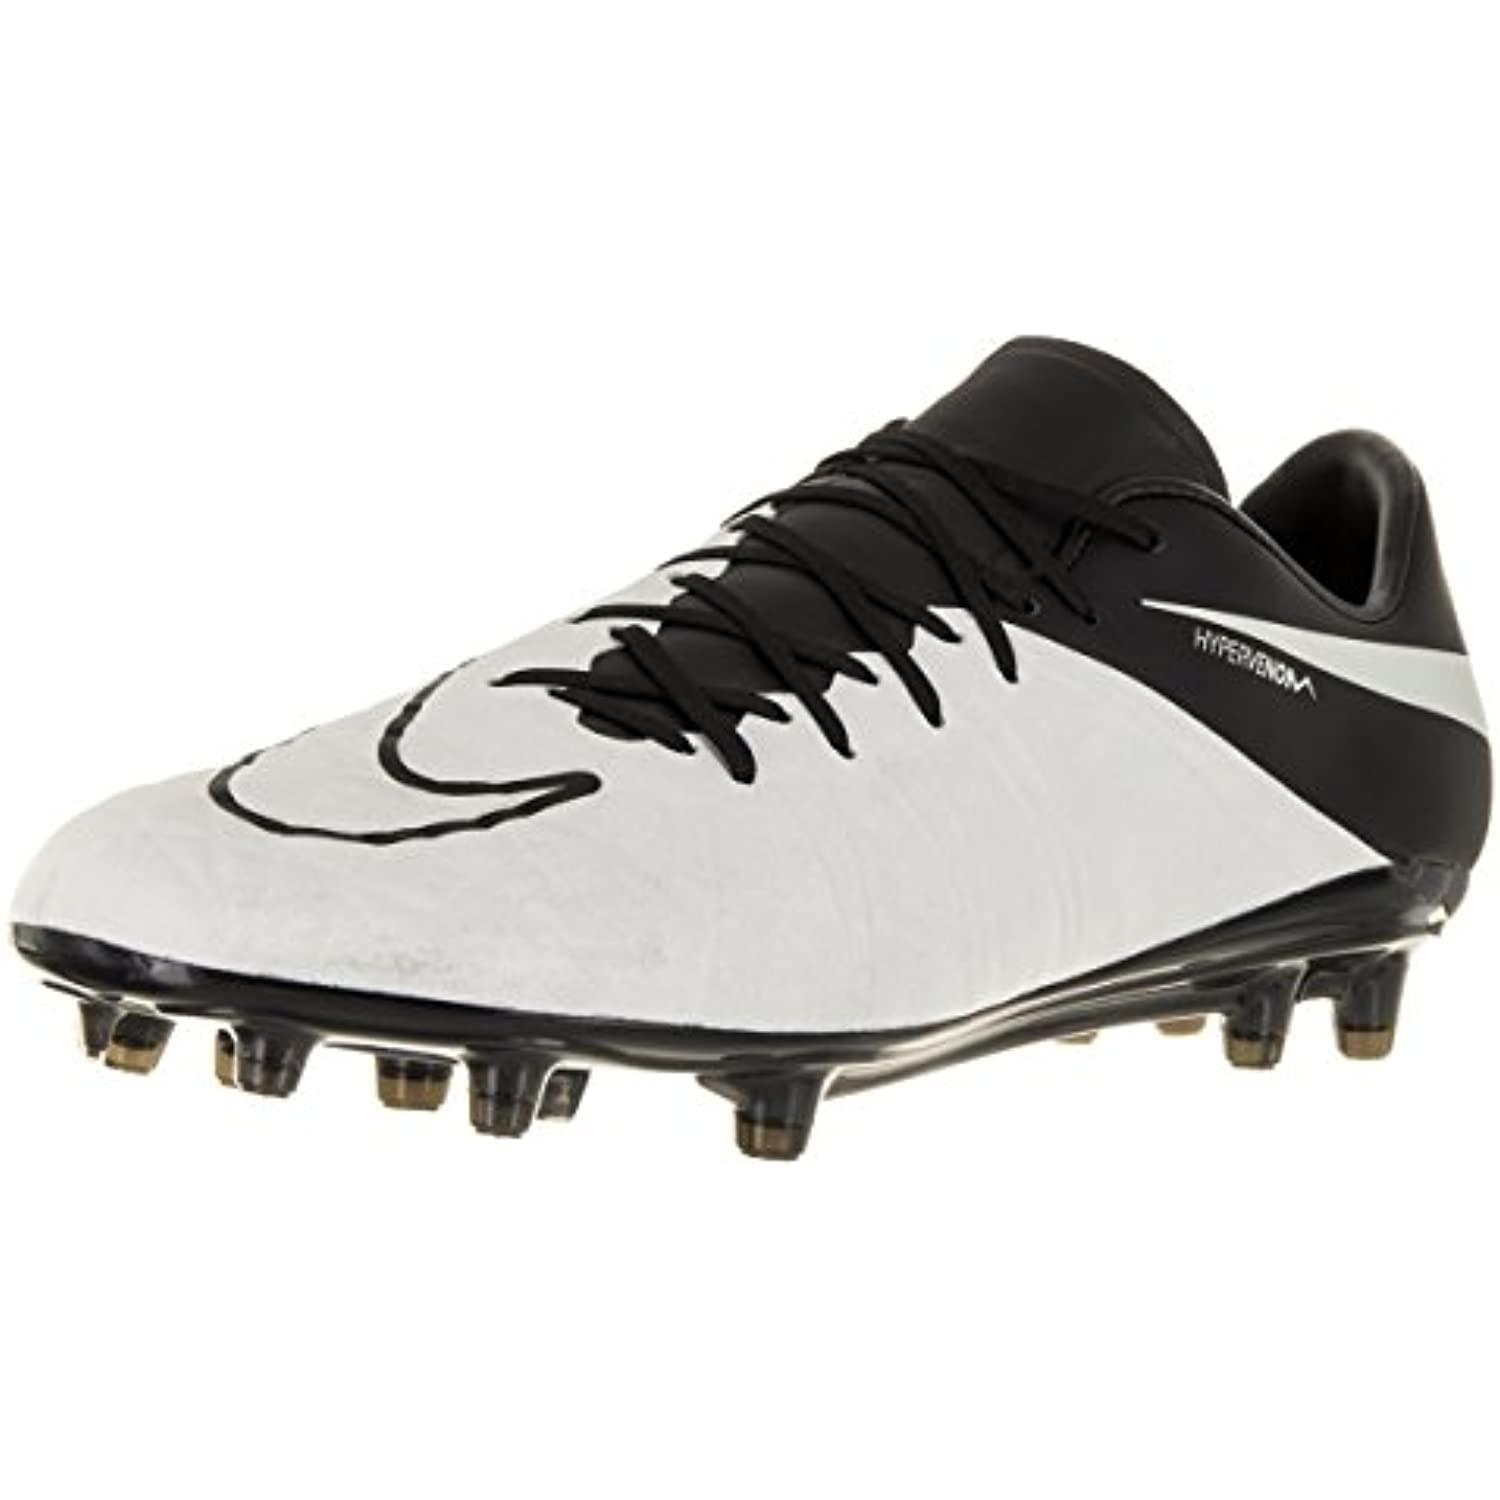 low priced 8dac1 c5d11 NIKE Hypervenom Phinish LTHR FG, FG, FG, Chaussures de Football Homme  B007P6S0BS - ebb696